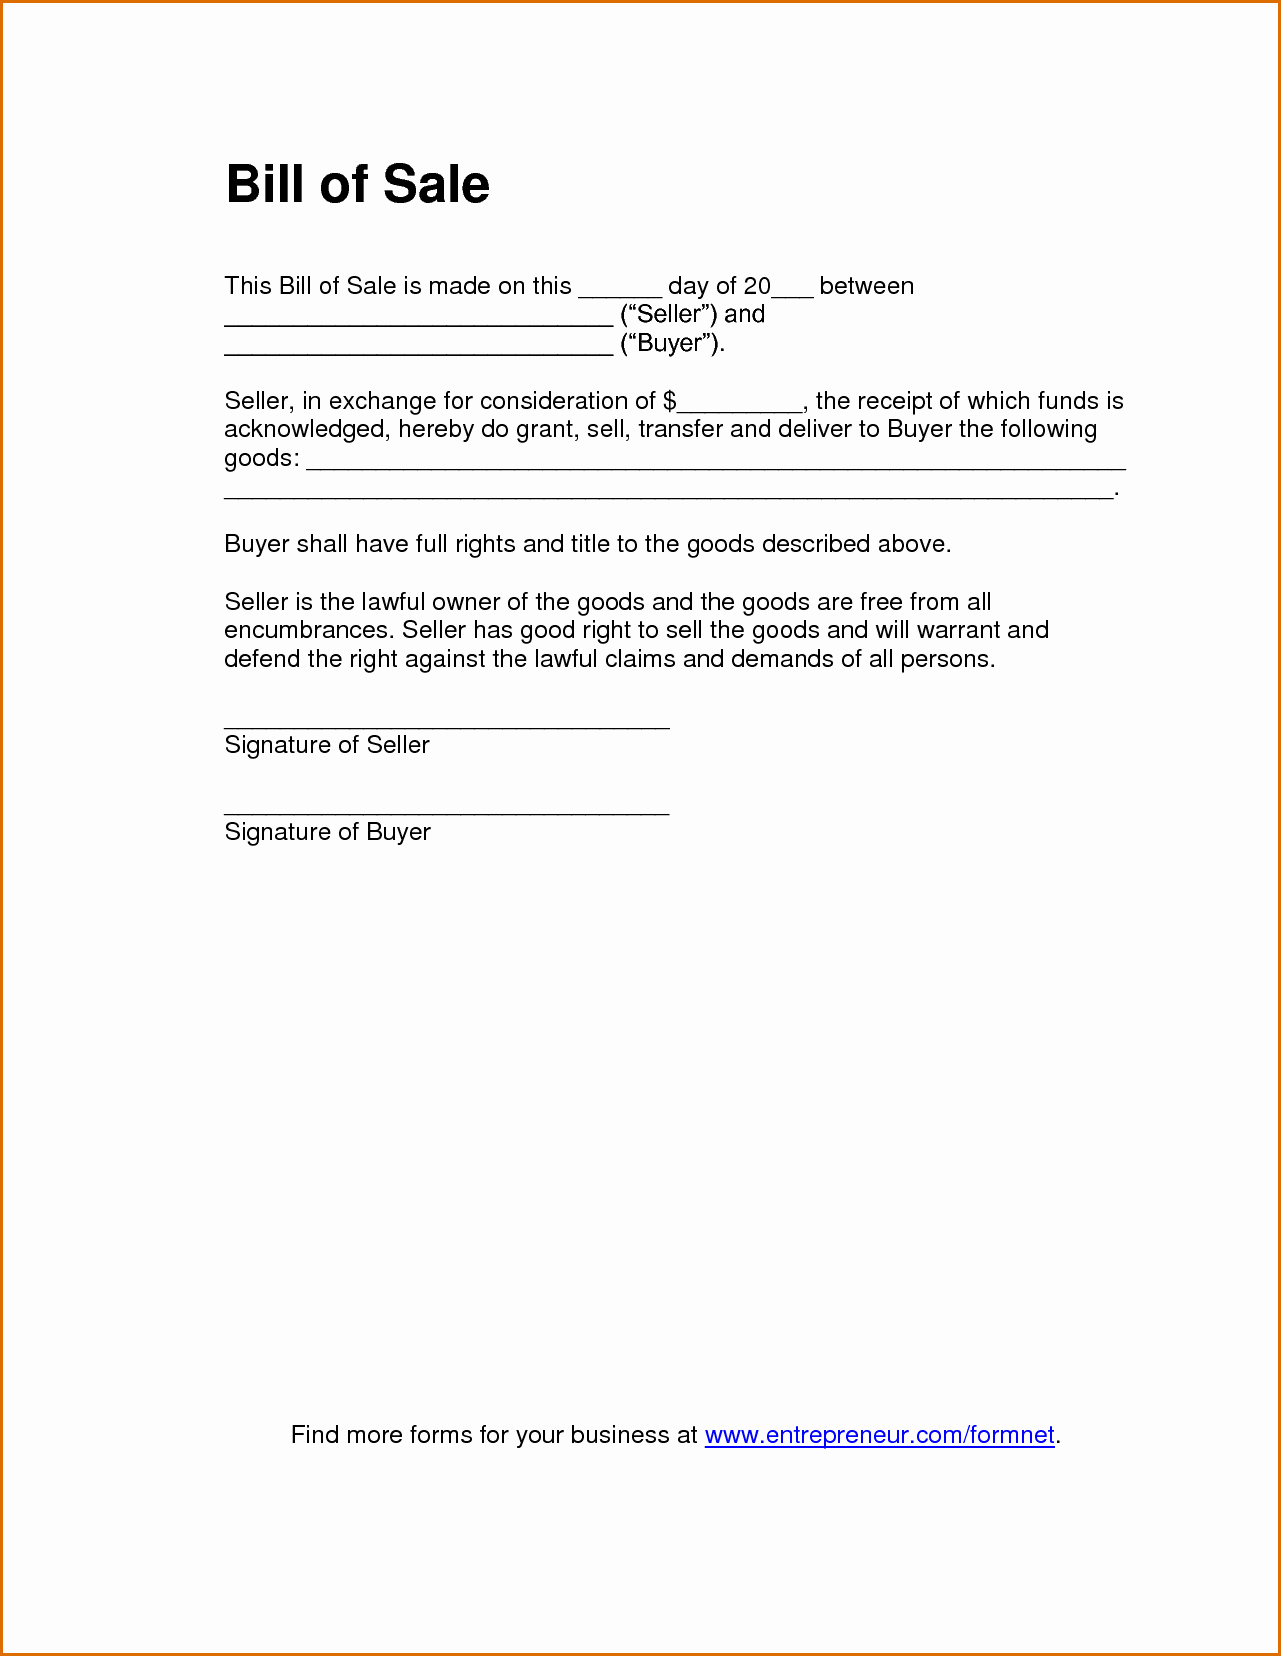 Microsoft Bill Of Sale Template Awesome 8 Bill Of Sale Word Template